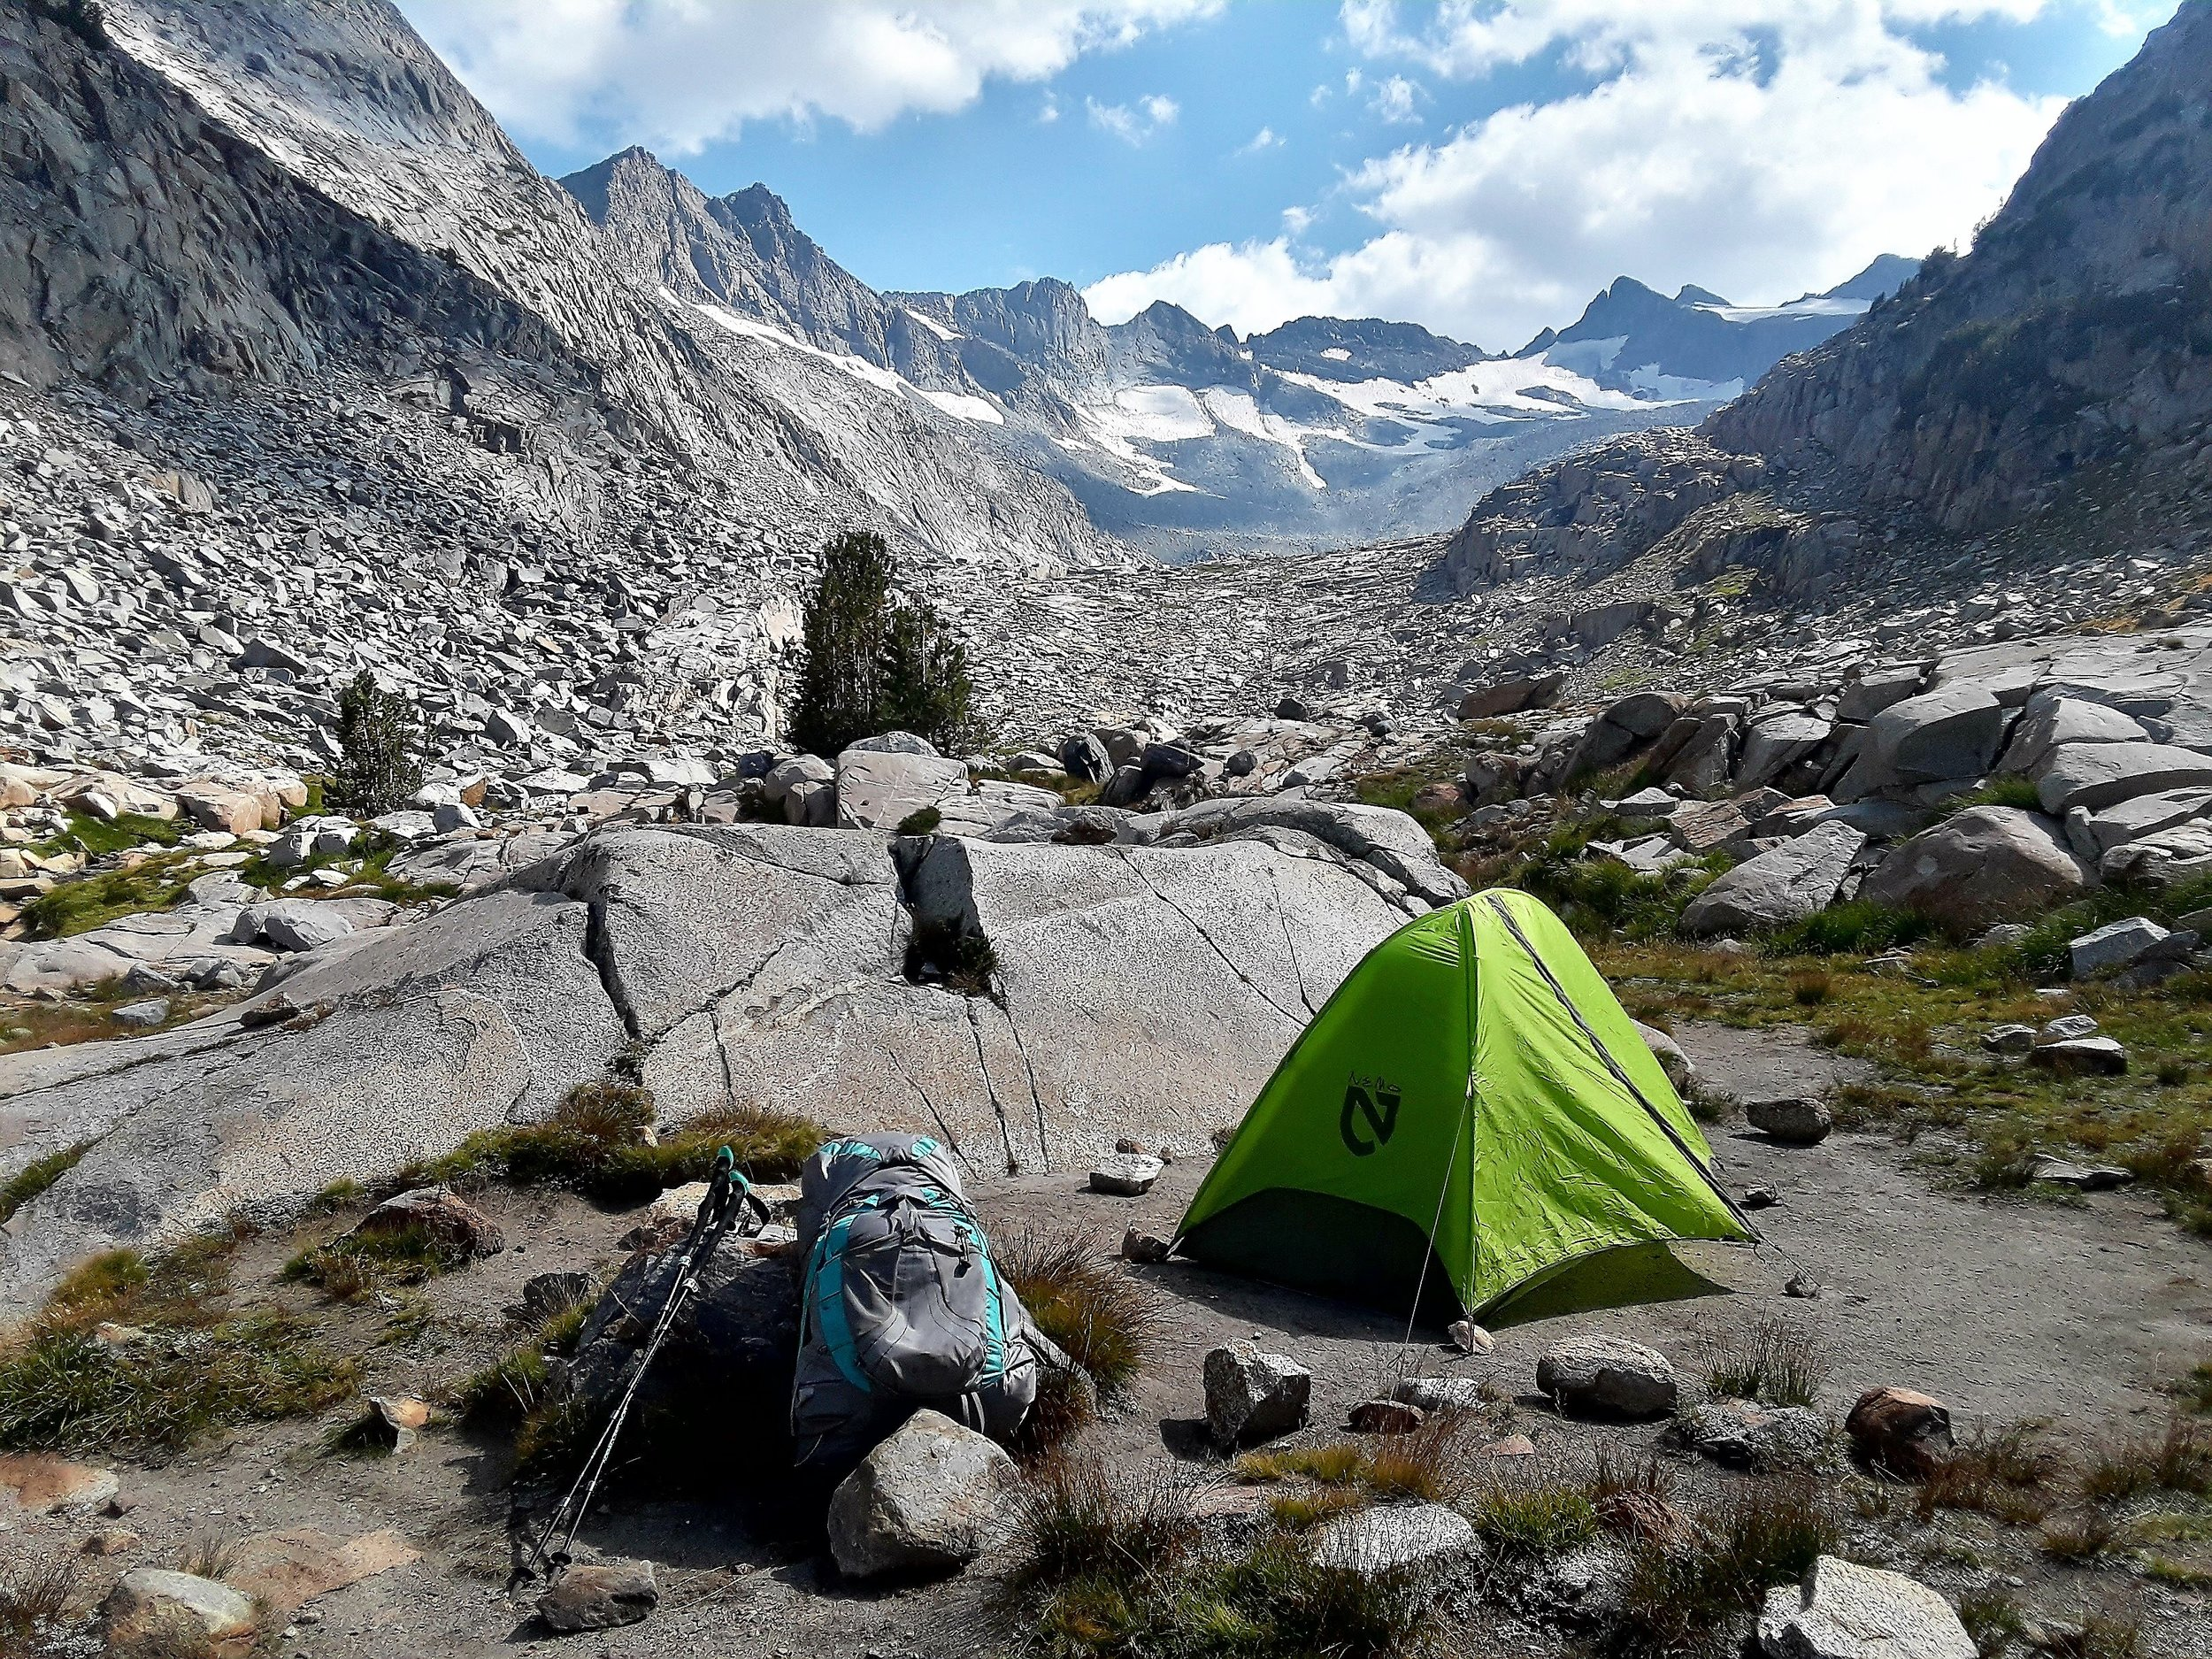 At the base of the Lyell Canyon you'll find one of my favorite campsites .